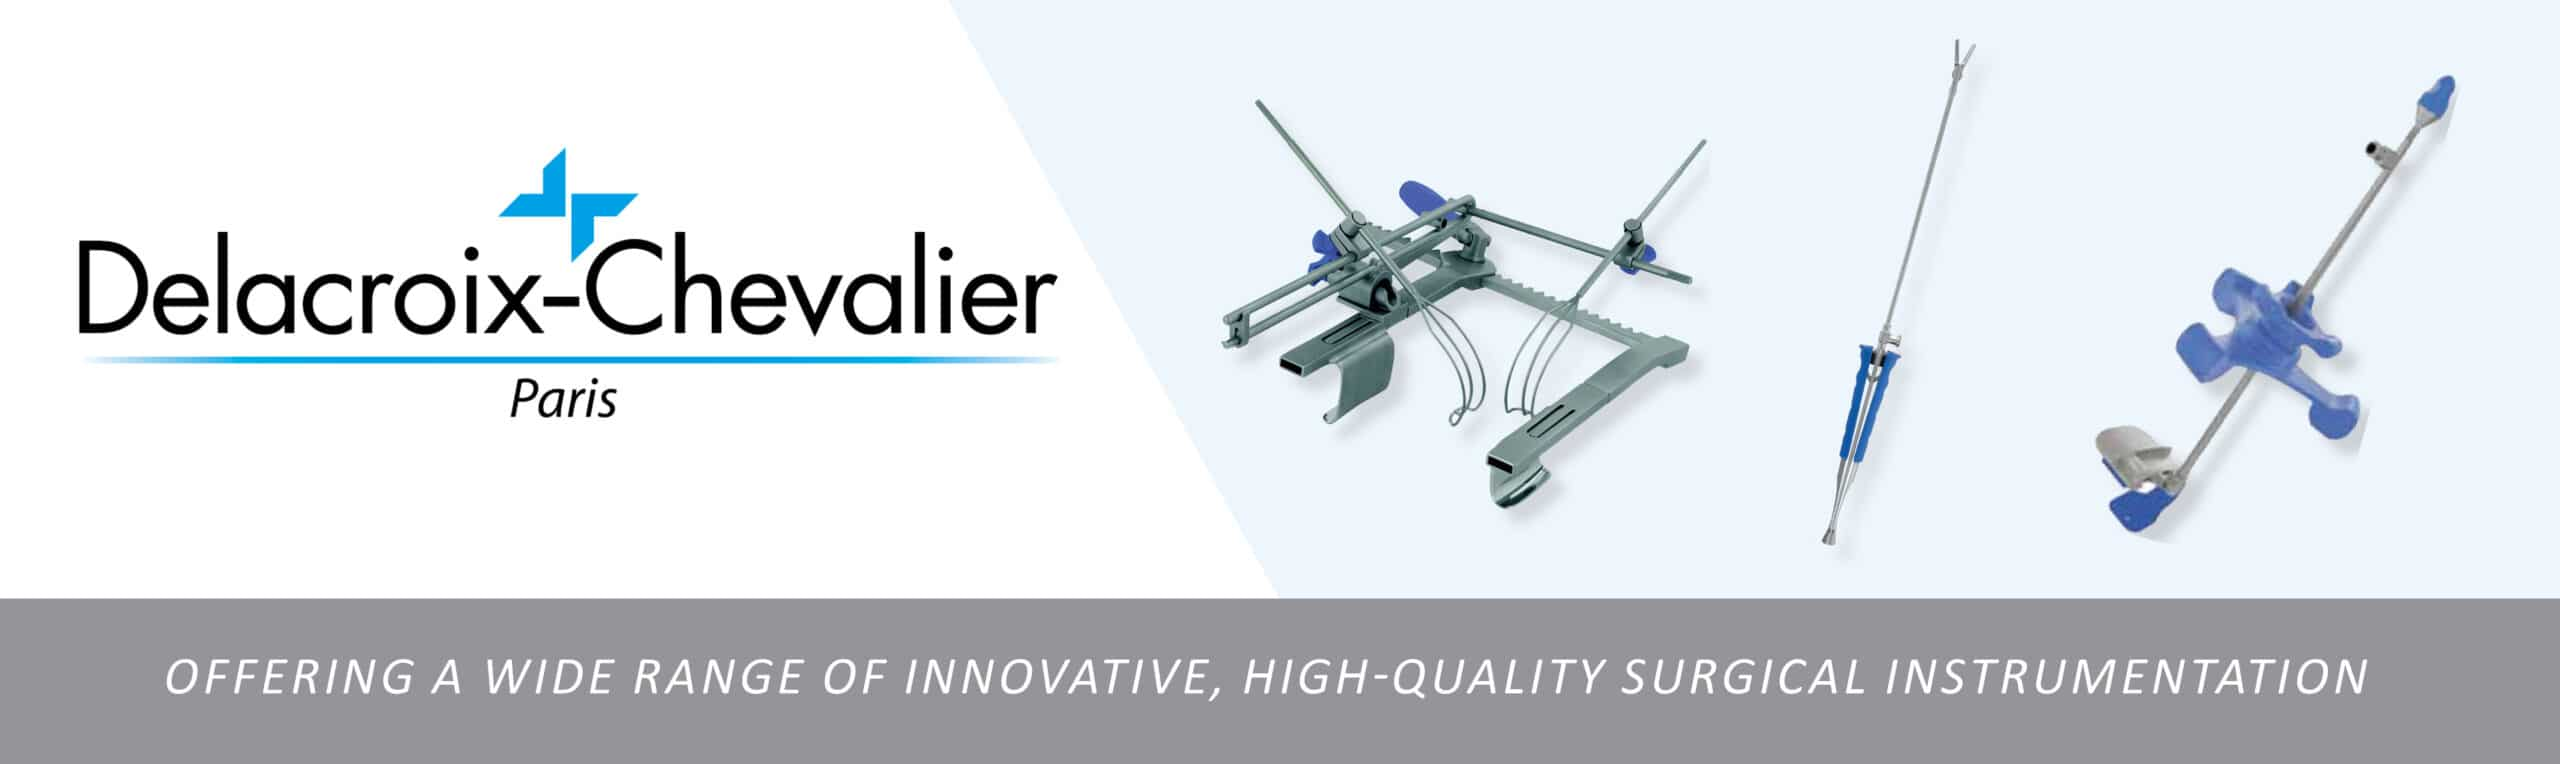 Offering a wide range of innovative, high-quality surgical instrumentation Delacroix-Chevalier